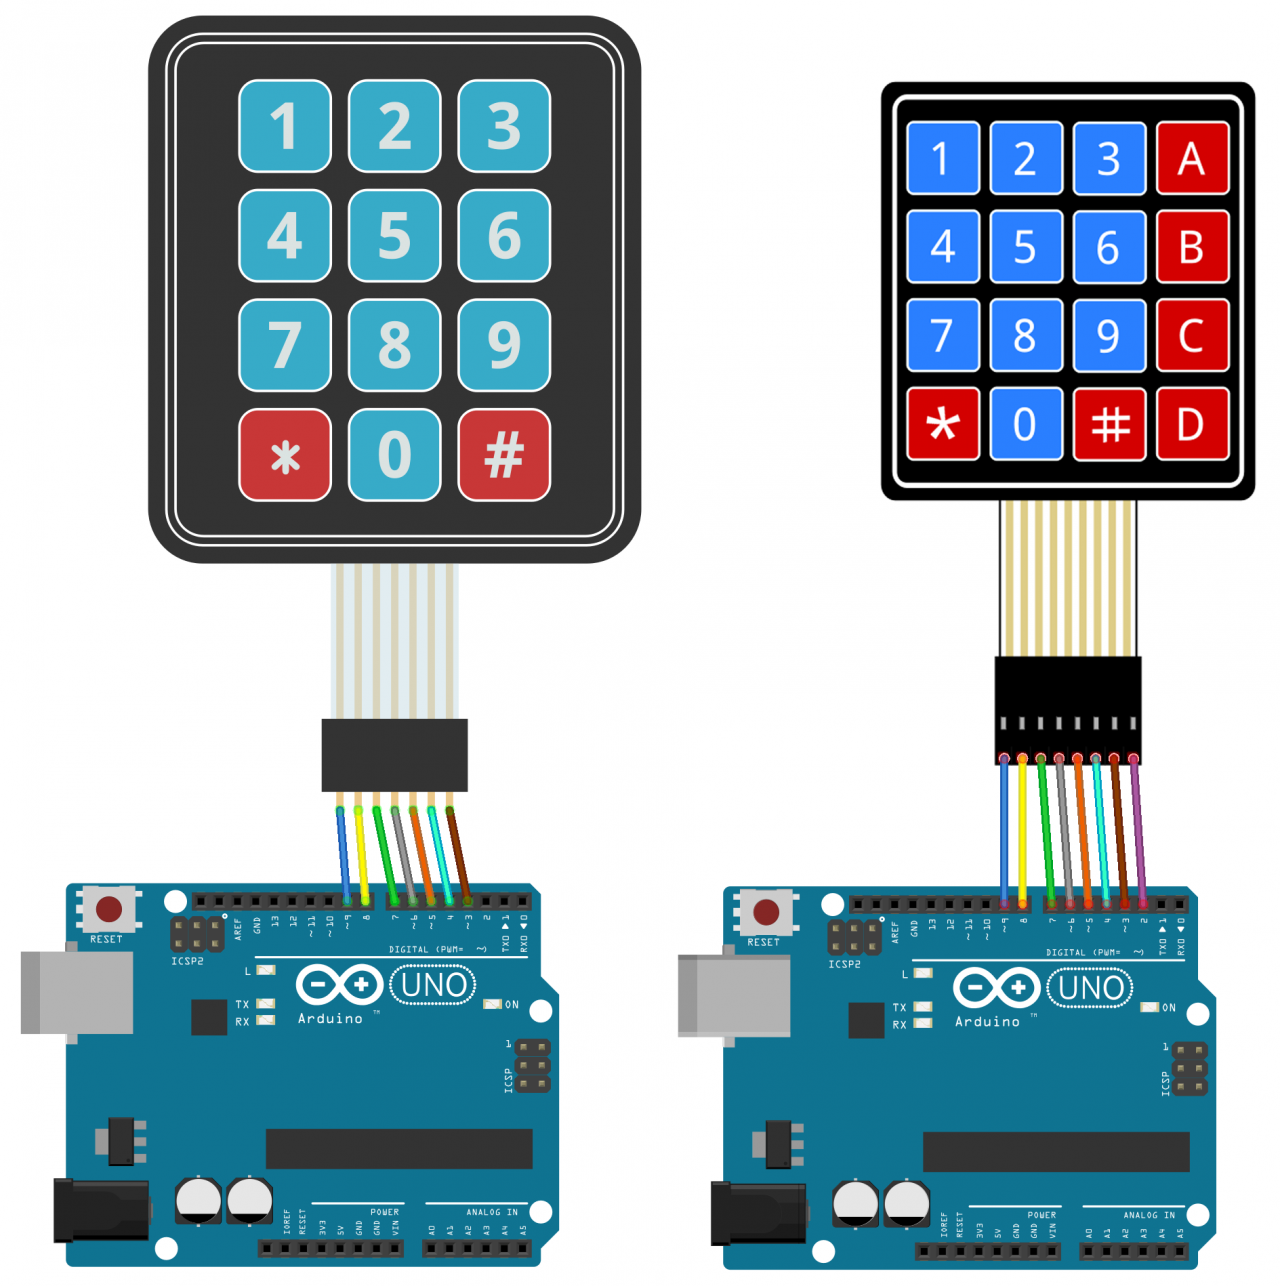 follow the diagrams below to connect the keypad to an arduino uno,  depending on whether you have a 3x4 or 4x4 keypad: